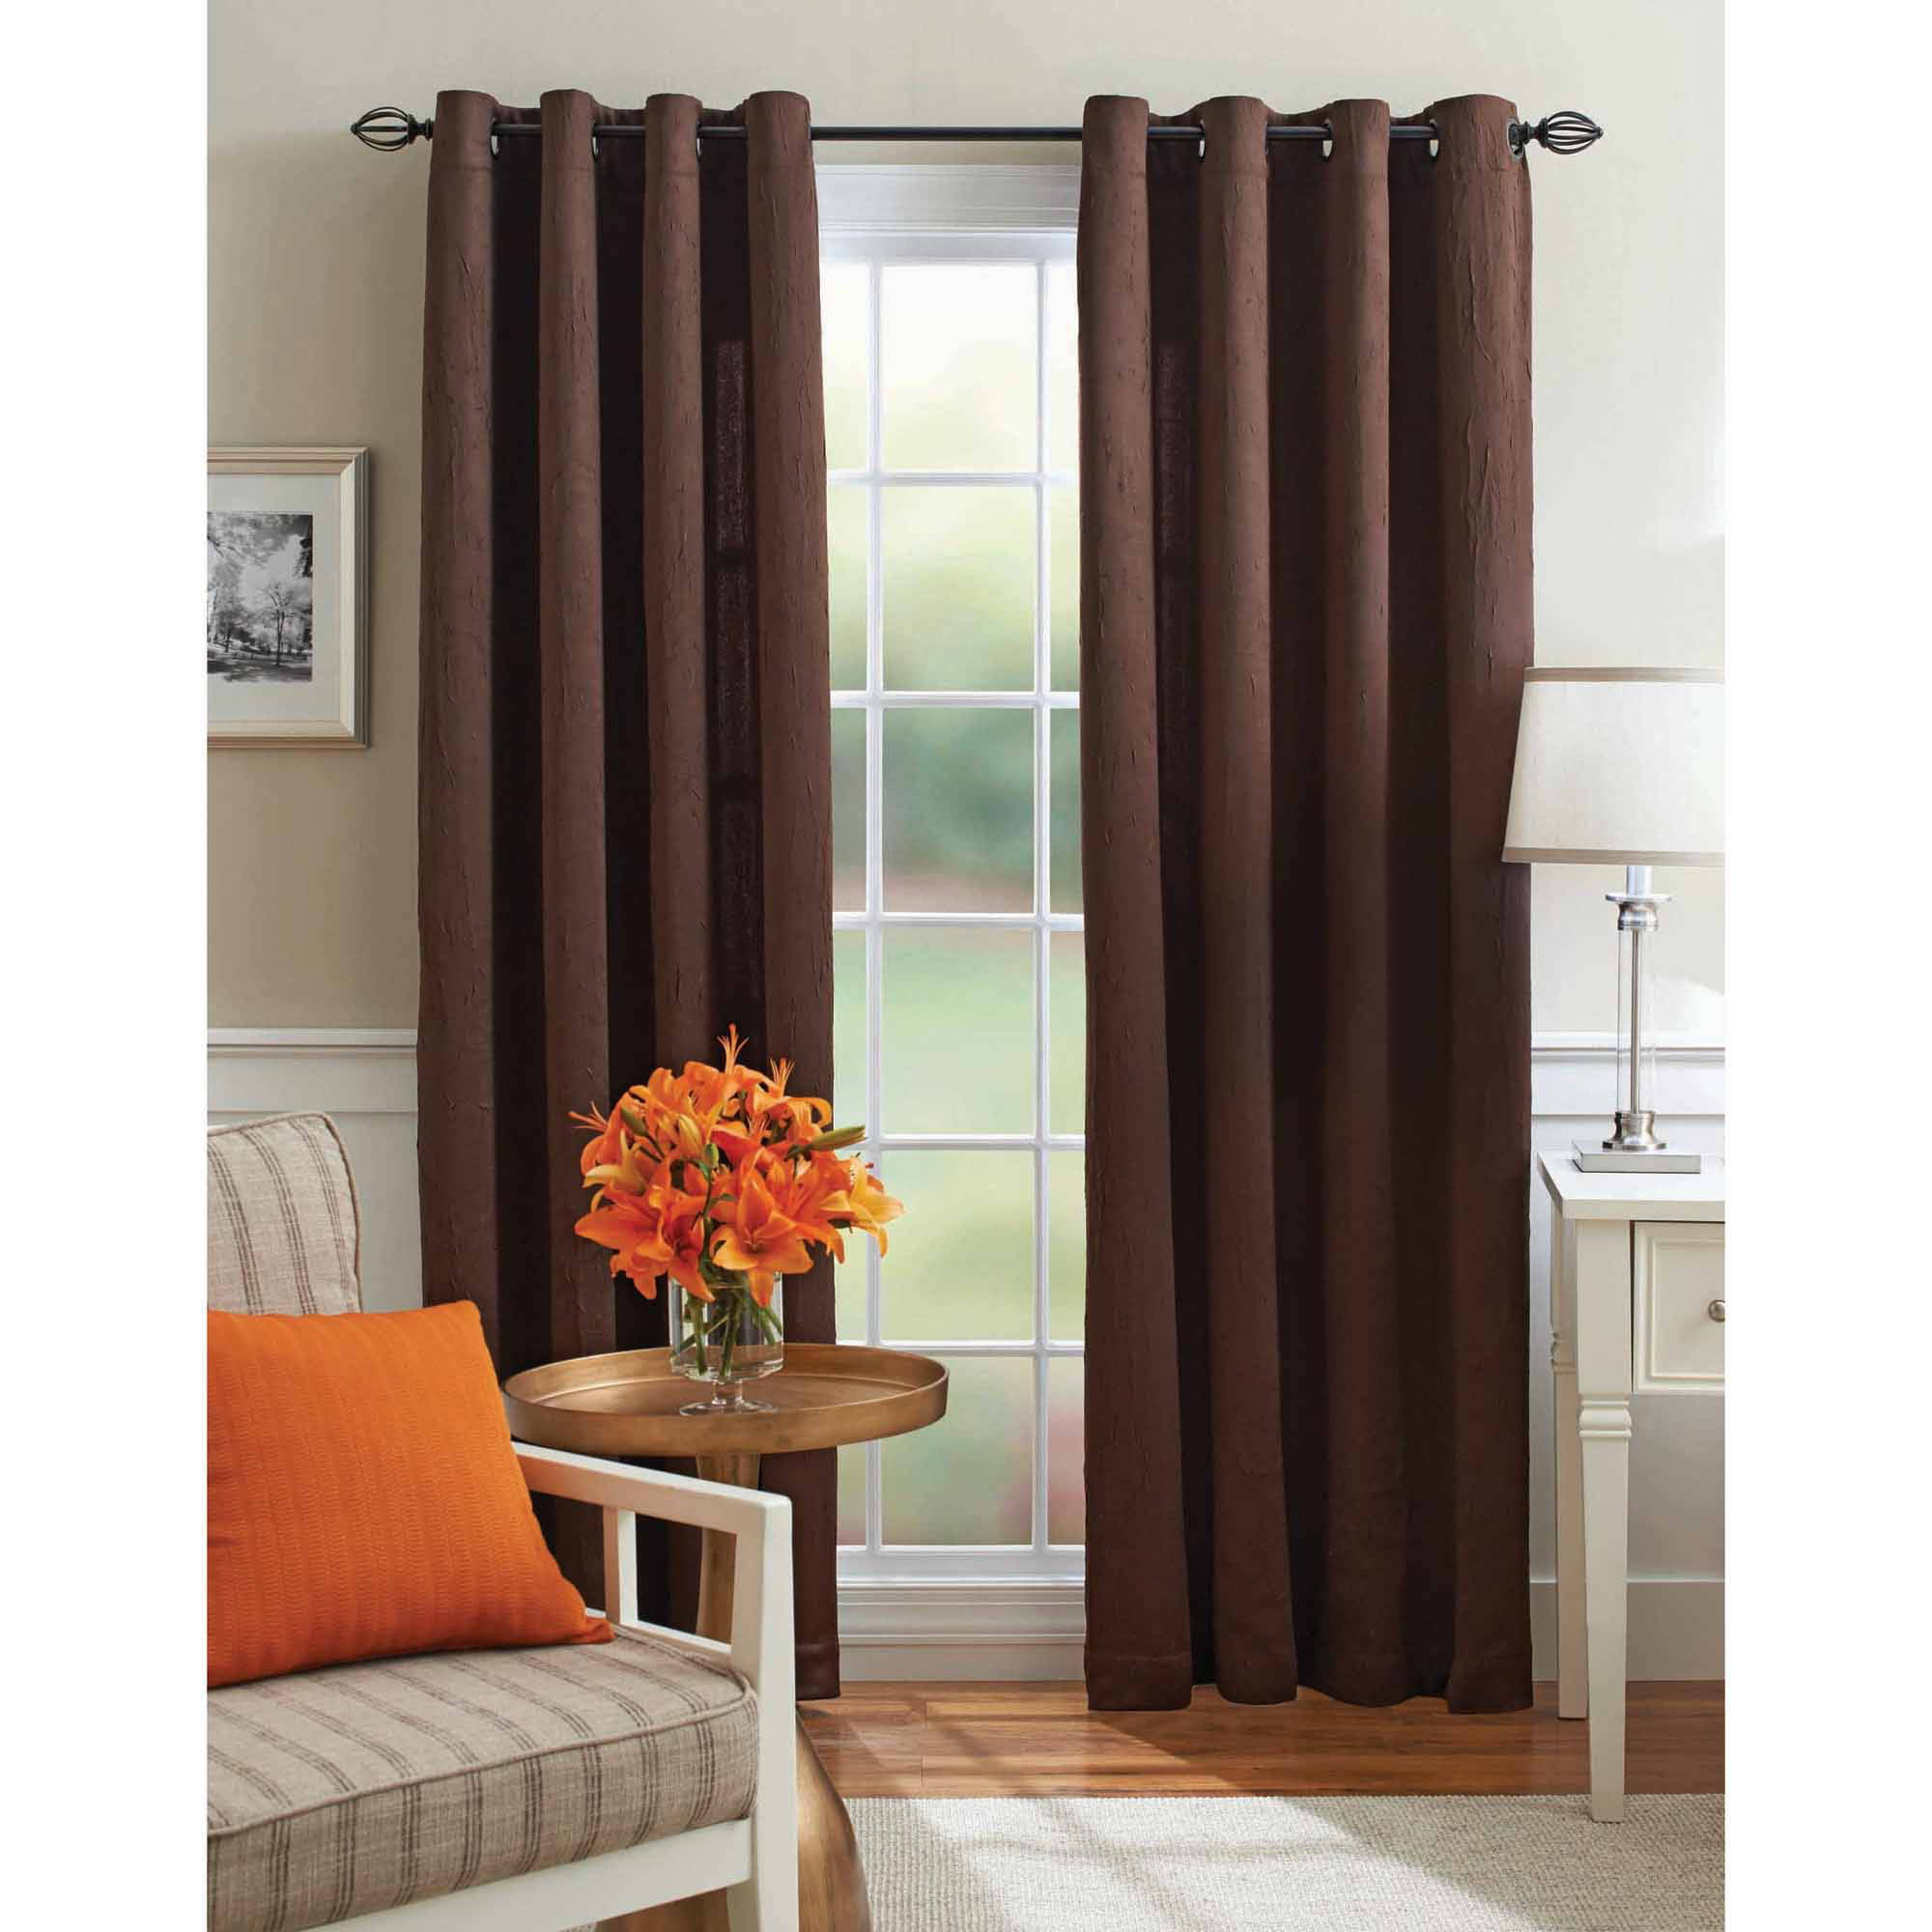 Better Homes and Gardens Embroidered Sheer Curtain Panel Walmart